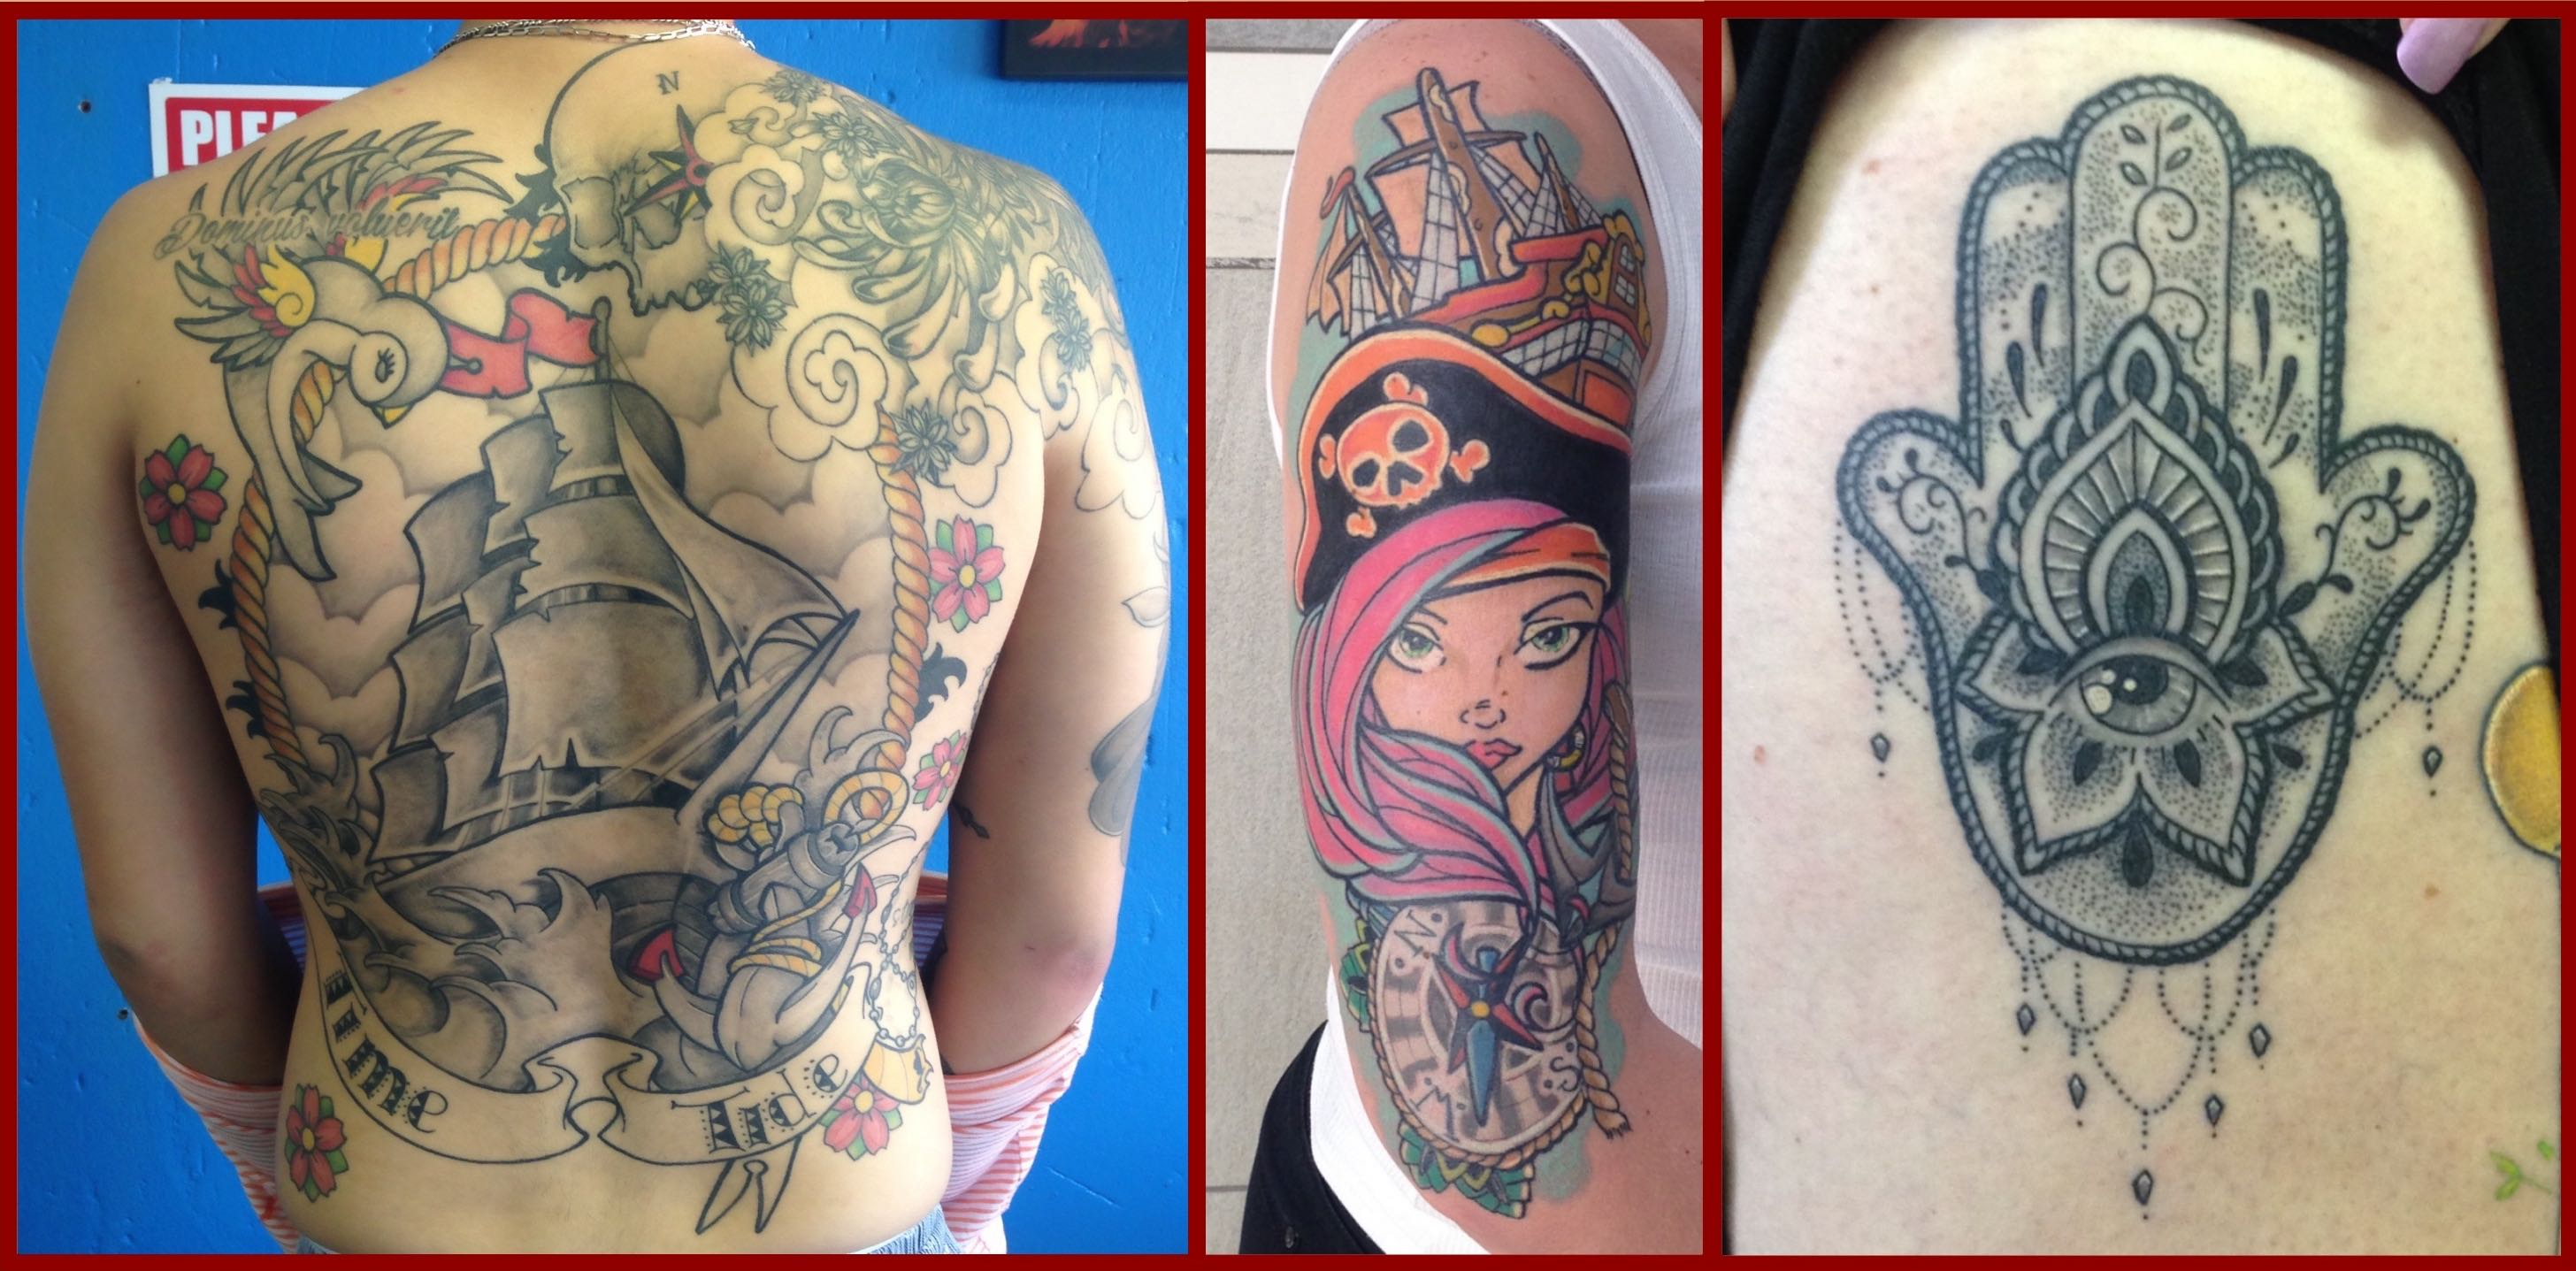 A selection of new school tattoos done by Alastair Magee